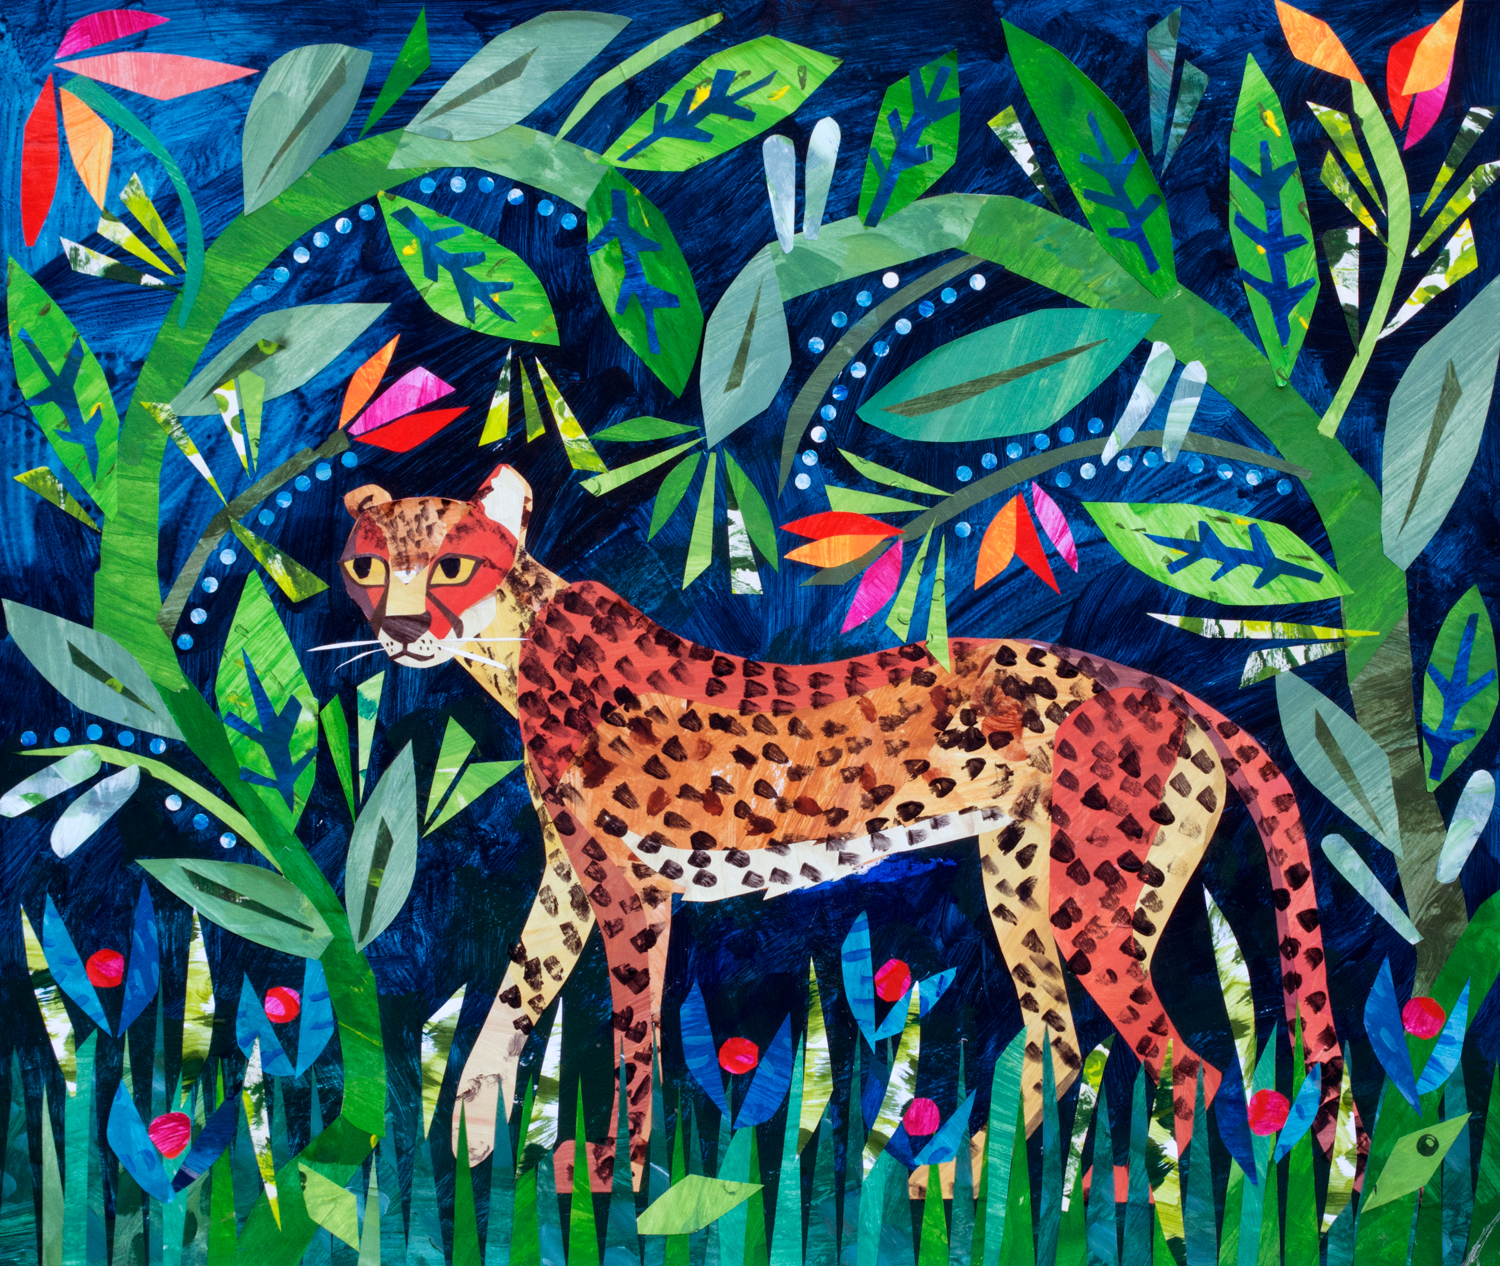 'Leopard in the Grass', paper collage